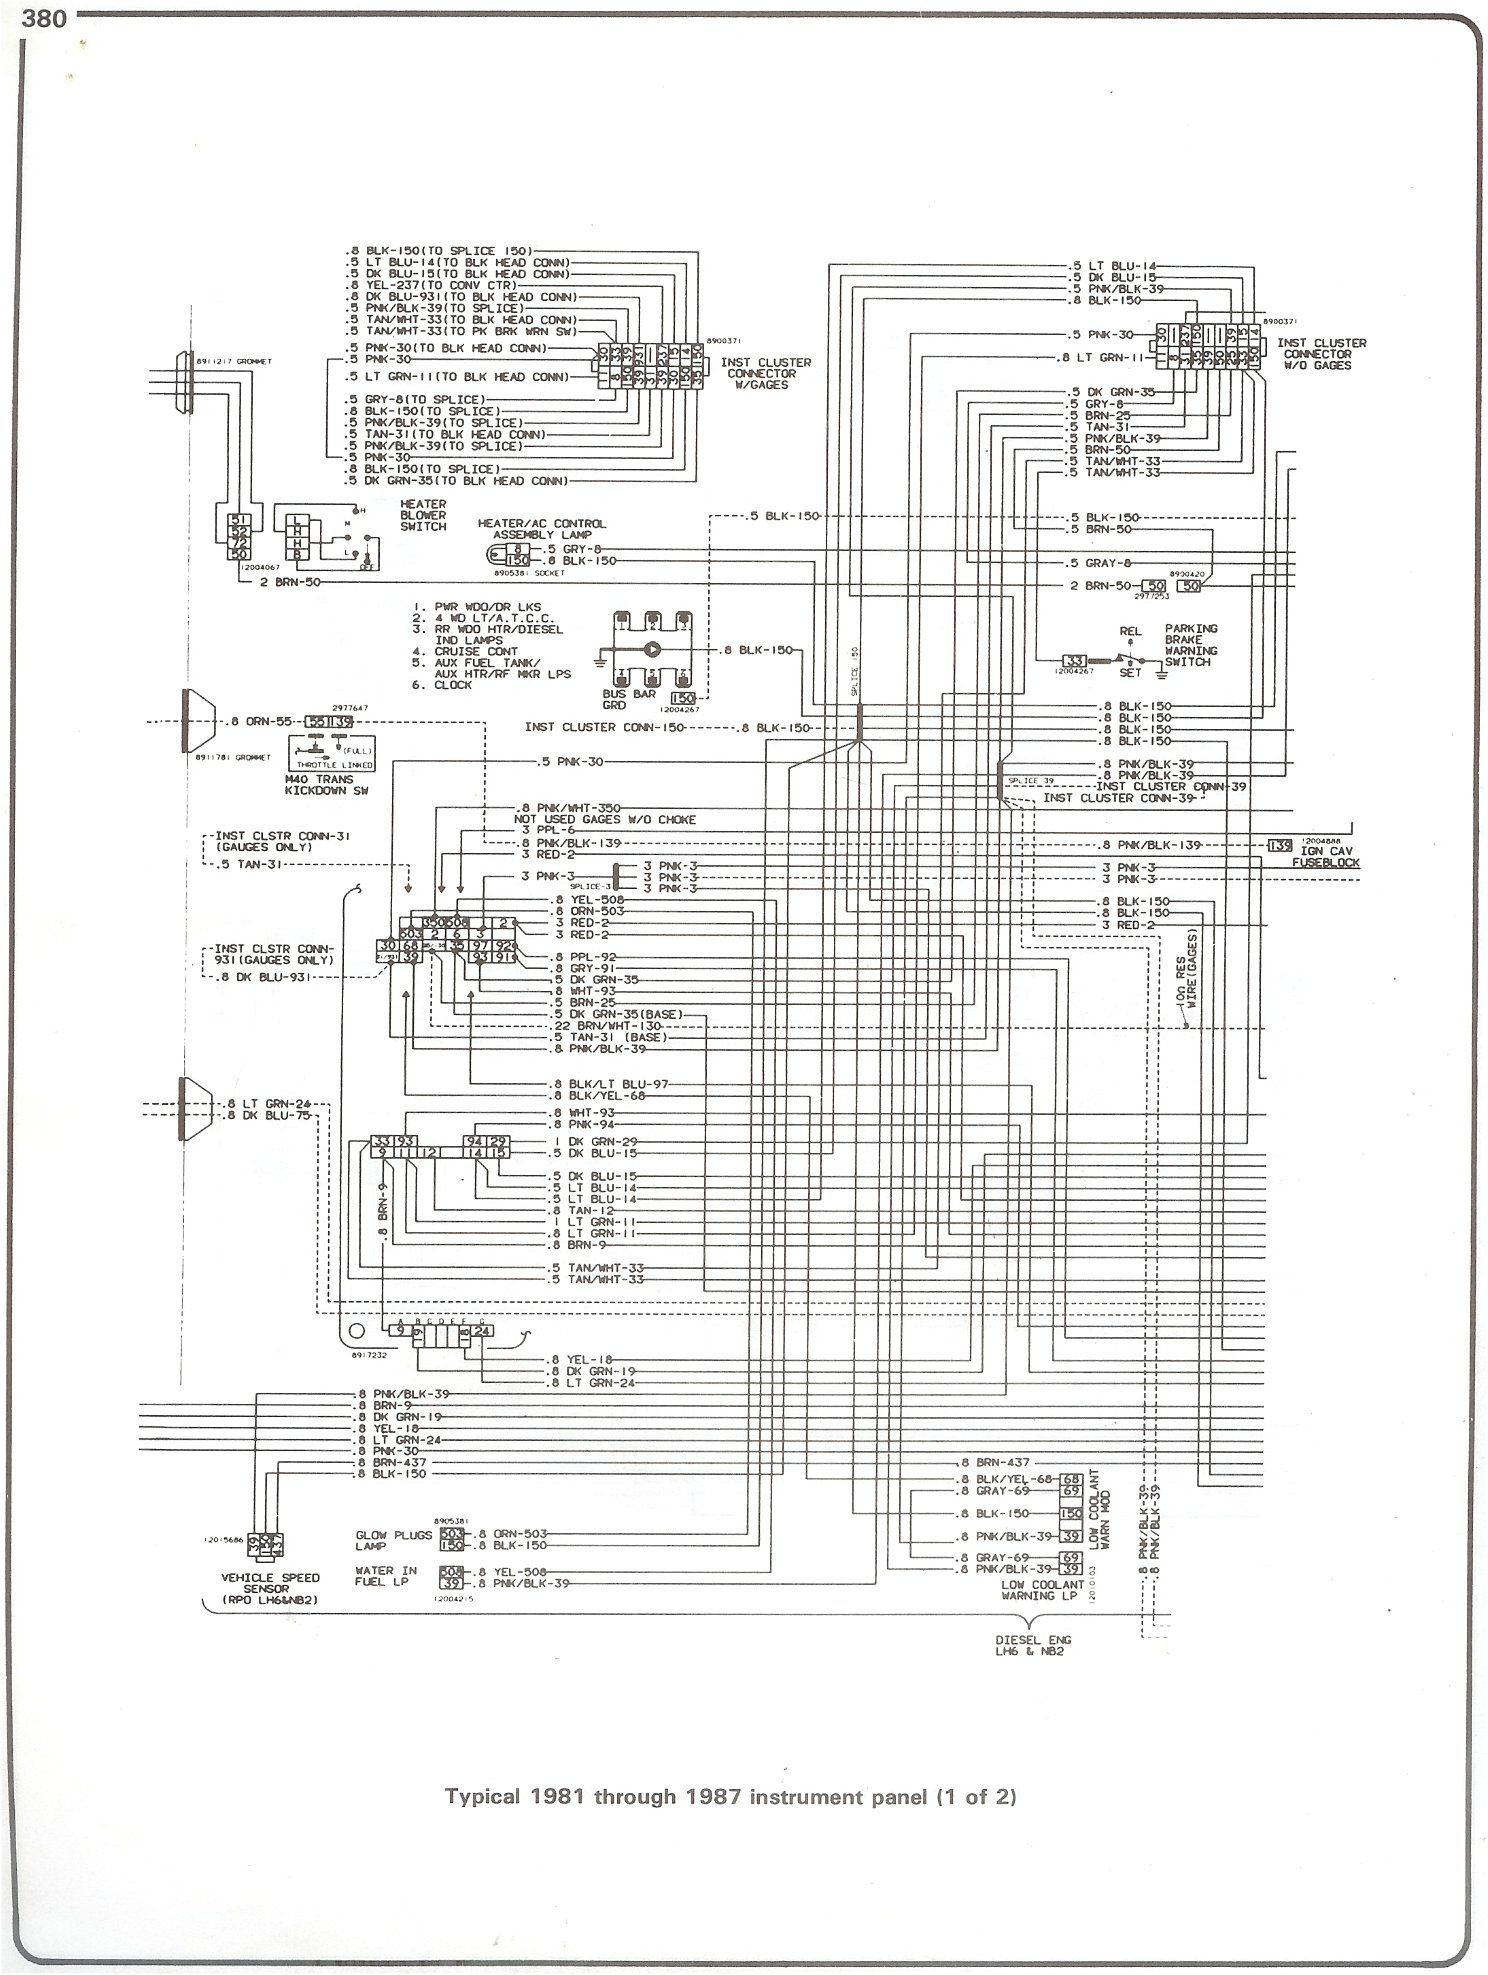 1987 chevrolet k5 blazer wiring diagram schematic - wiring diagram system  chase-locate-a - chase-locate-a.ediliadesign.it  ediliadesign.it